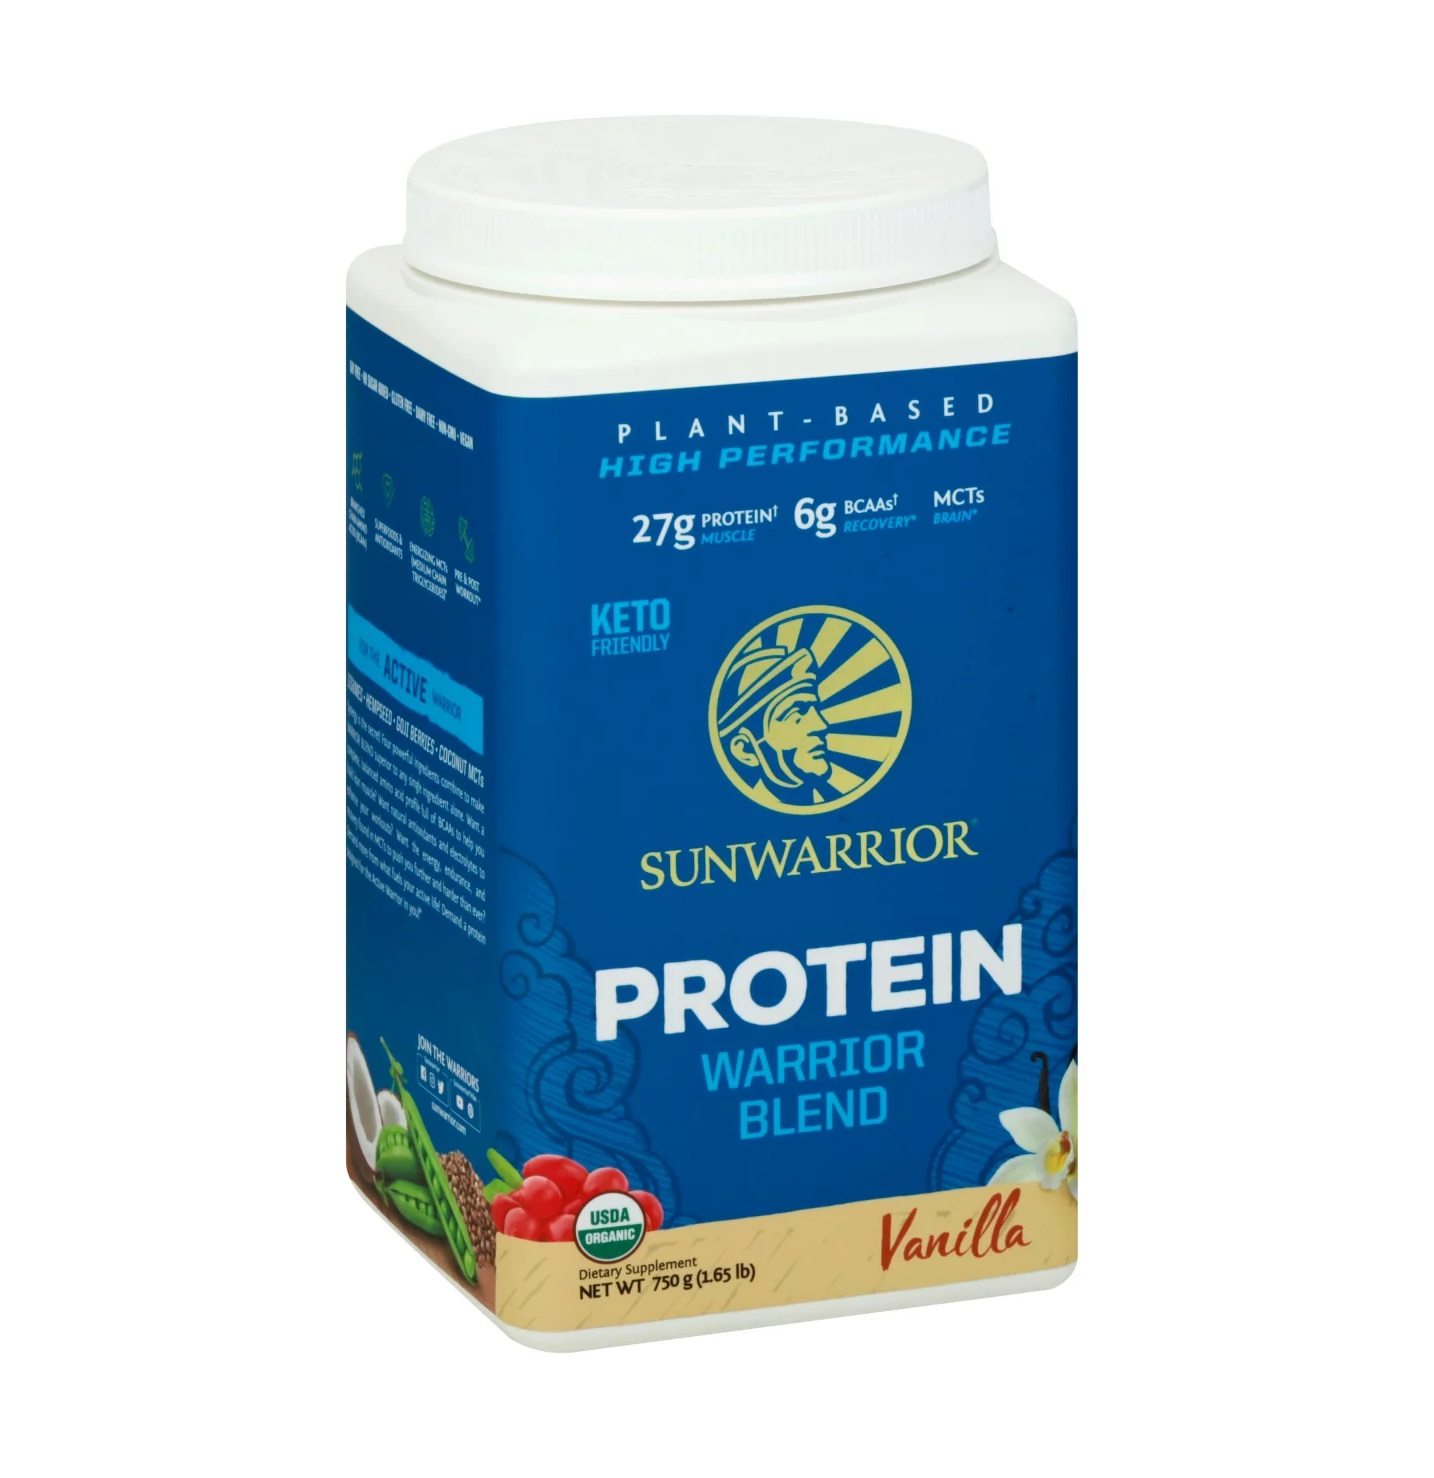 Sunwarrior Natural Protein Powder Reviews